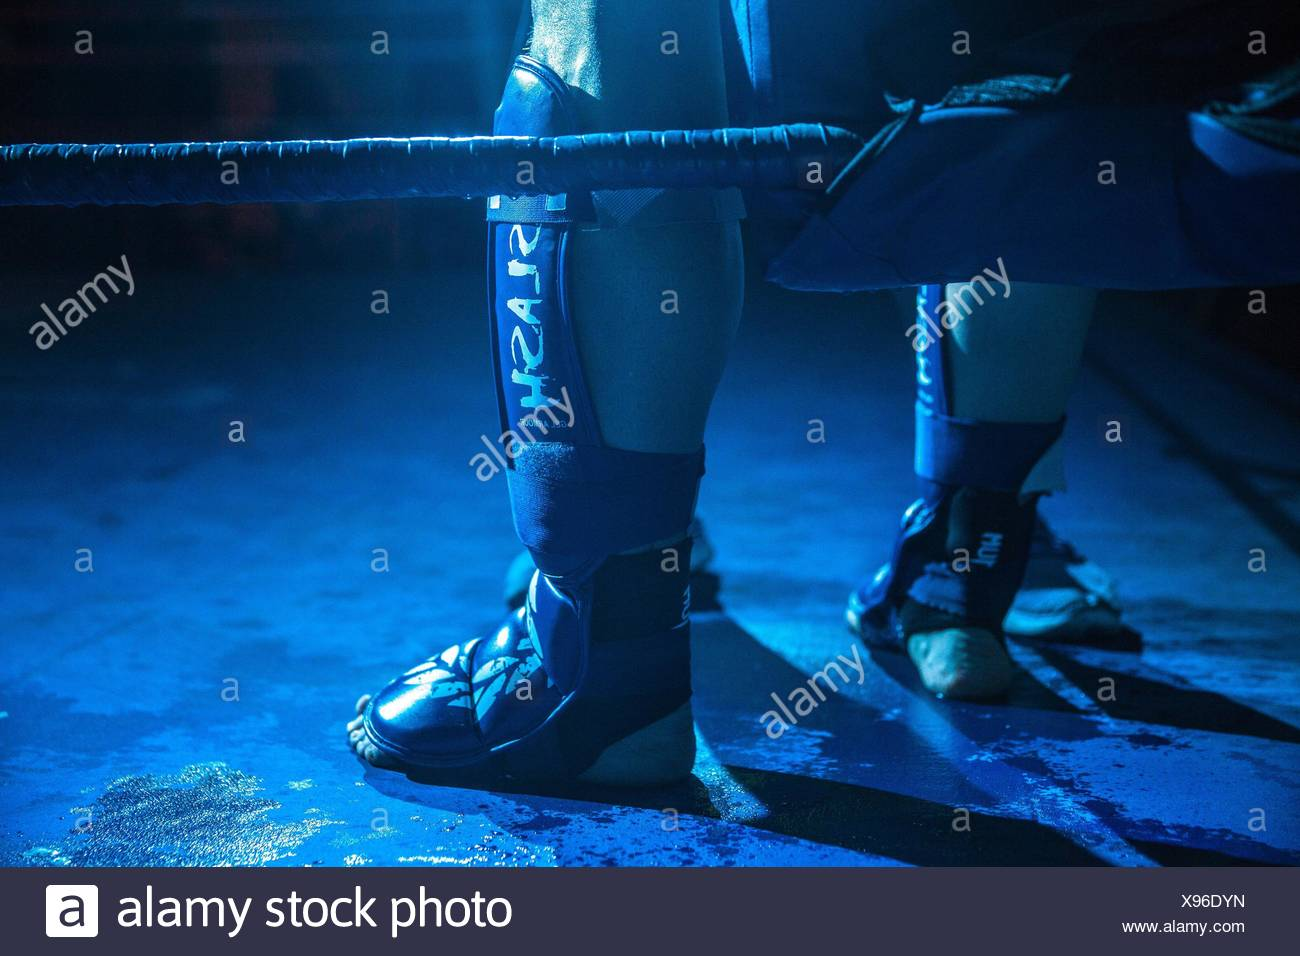 male versus male kickboxing match - Stock Image